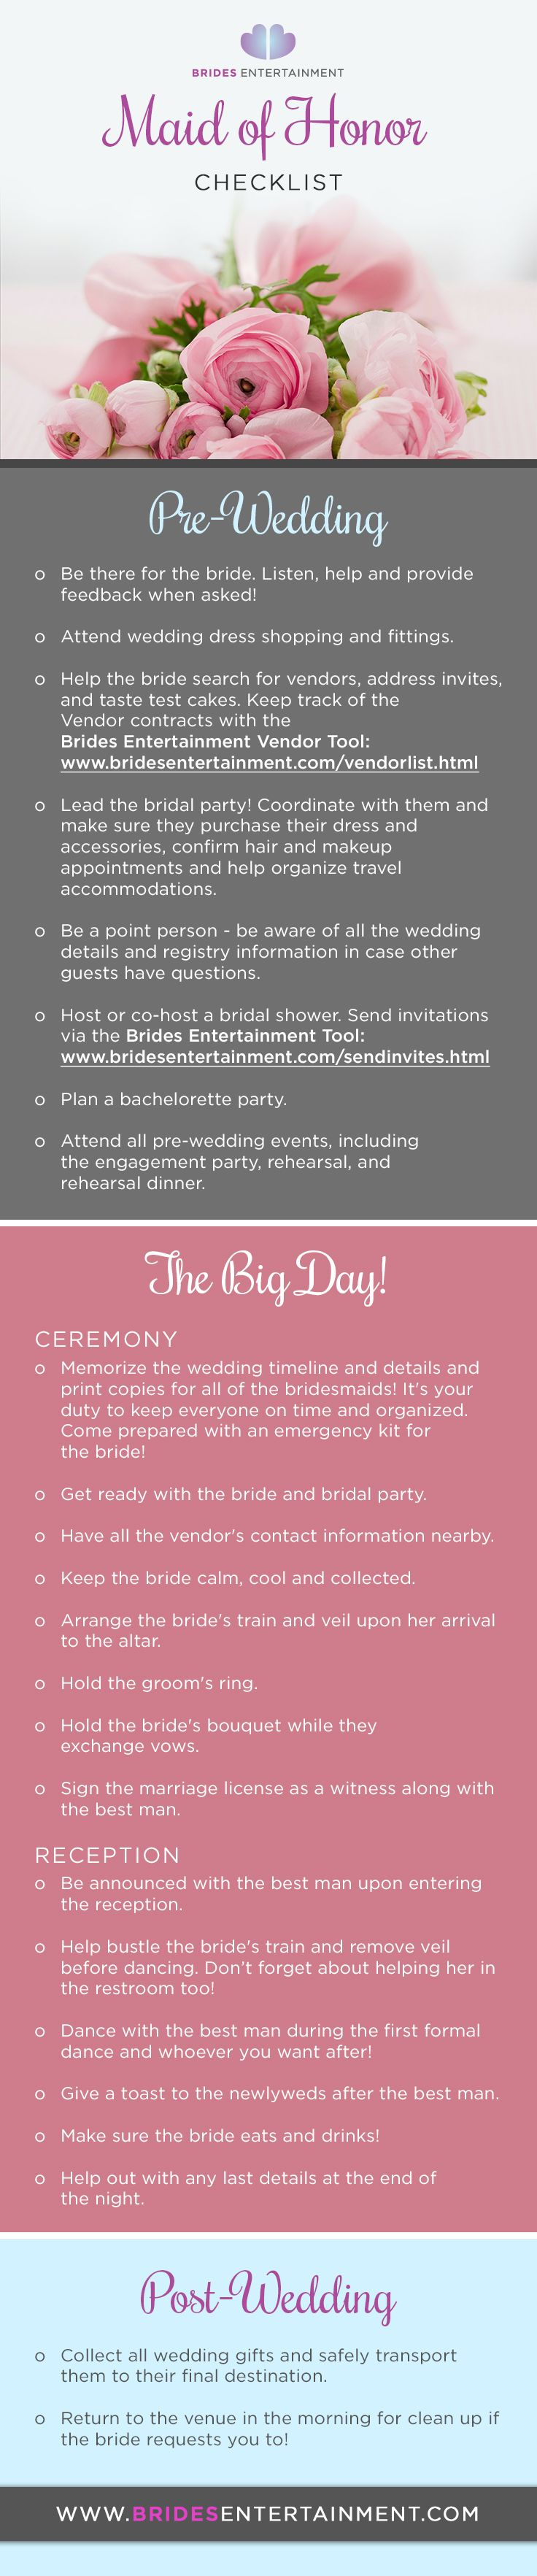 best ideas about bridesmaid duties bachelorette brides entertainment maid of honor duties checklist pre wedding during wedding and